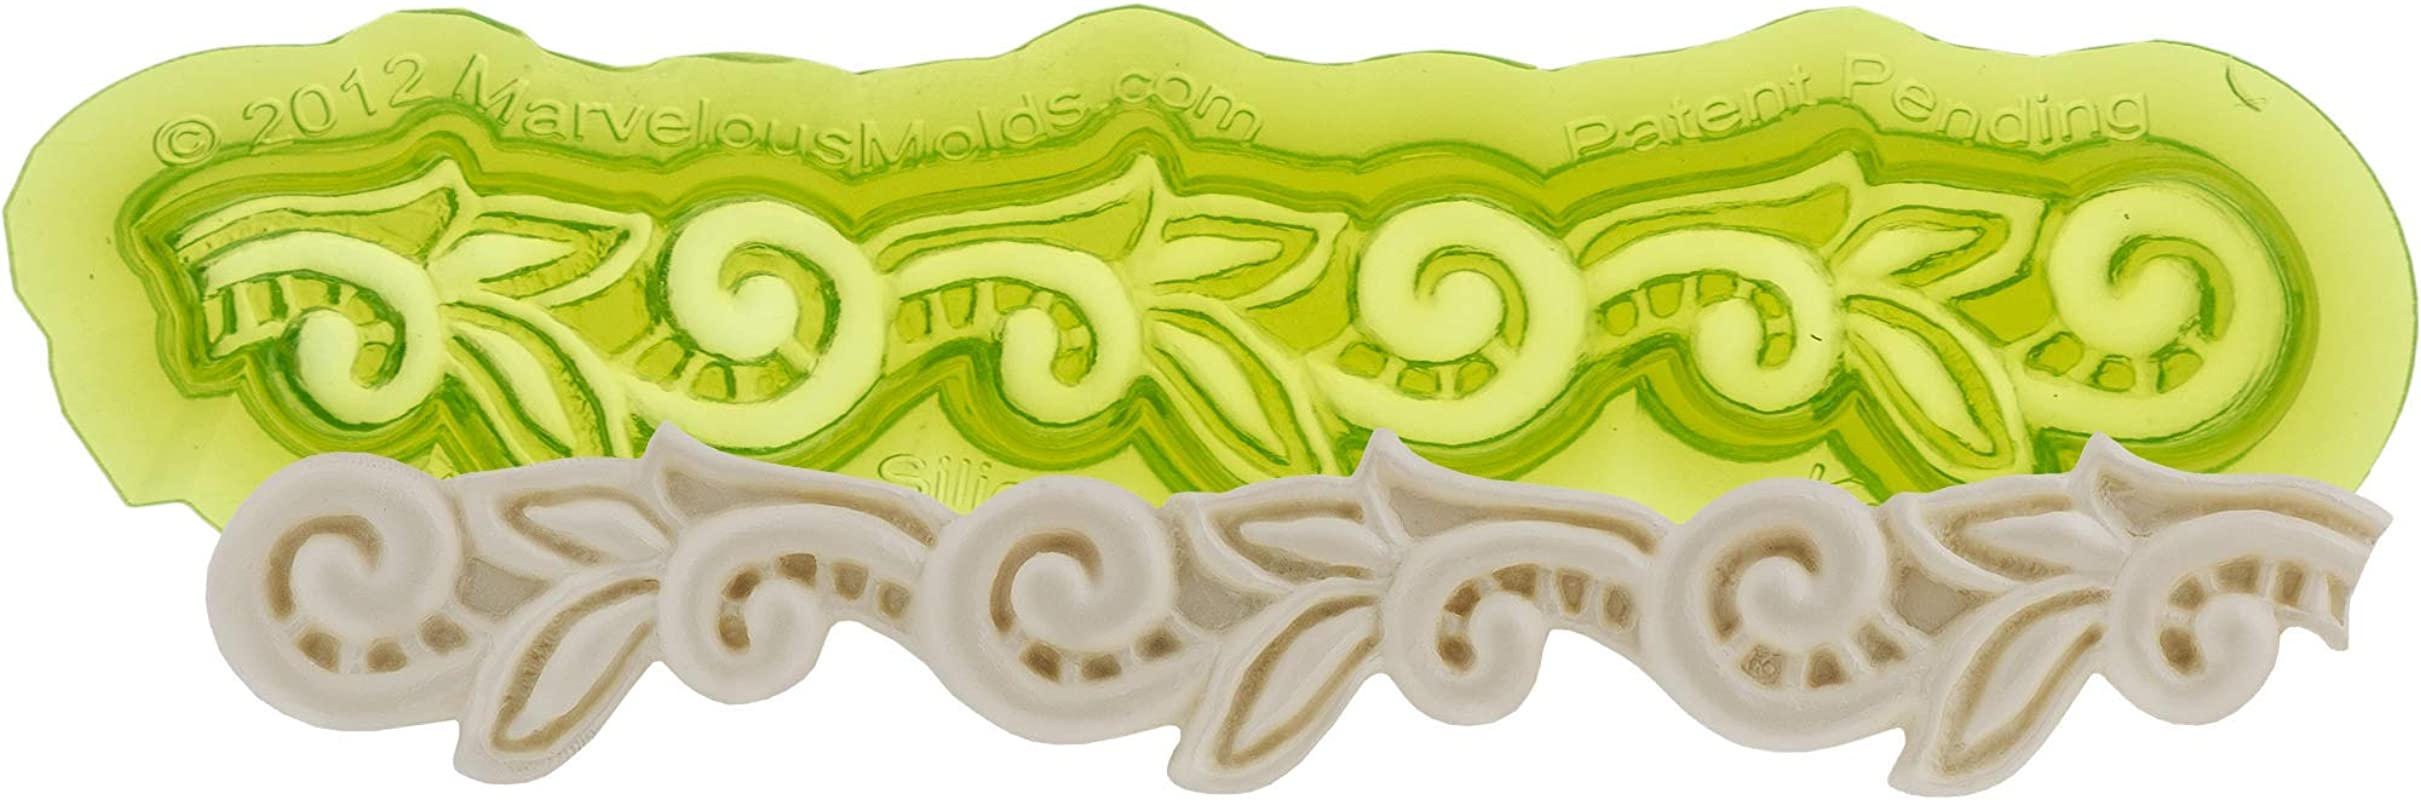 Marvelous Molds Silicone Lace Mold Kelly Cake Decorating With Fondant Gum Paste And Rolled Icing